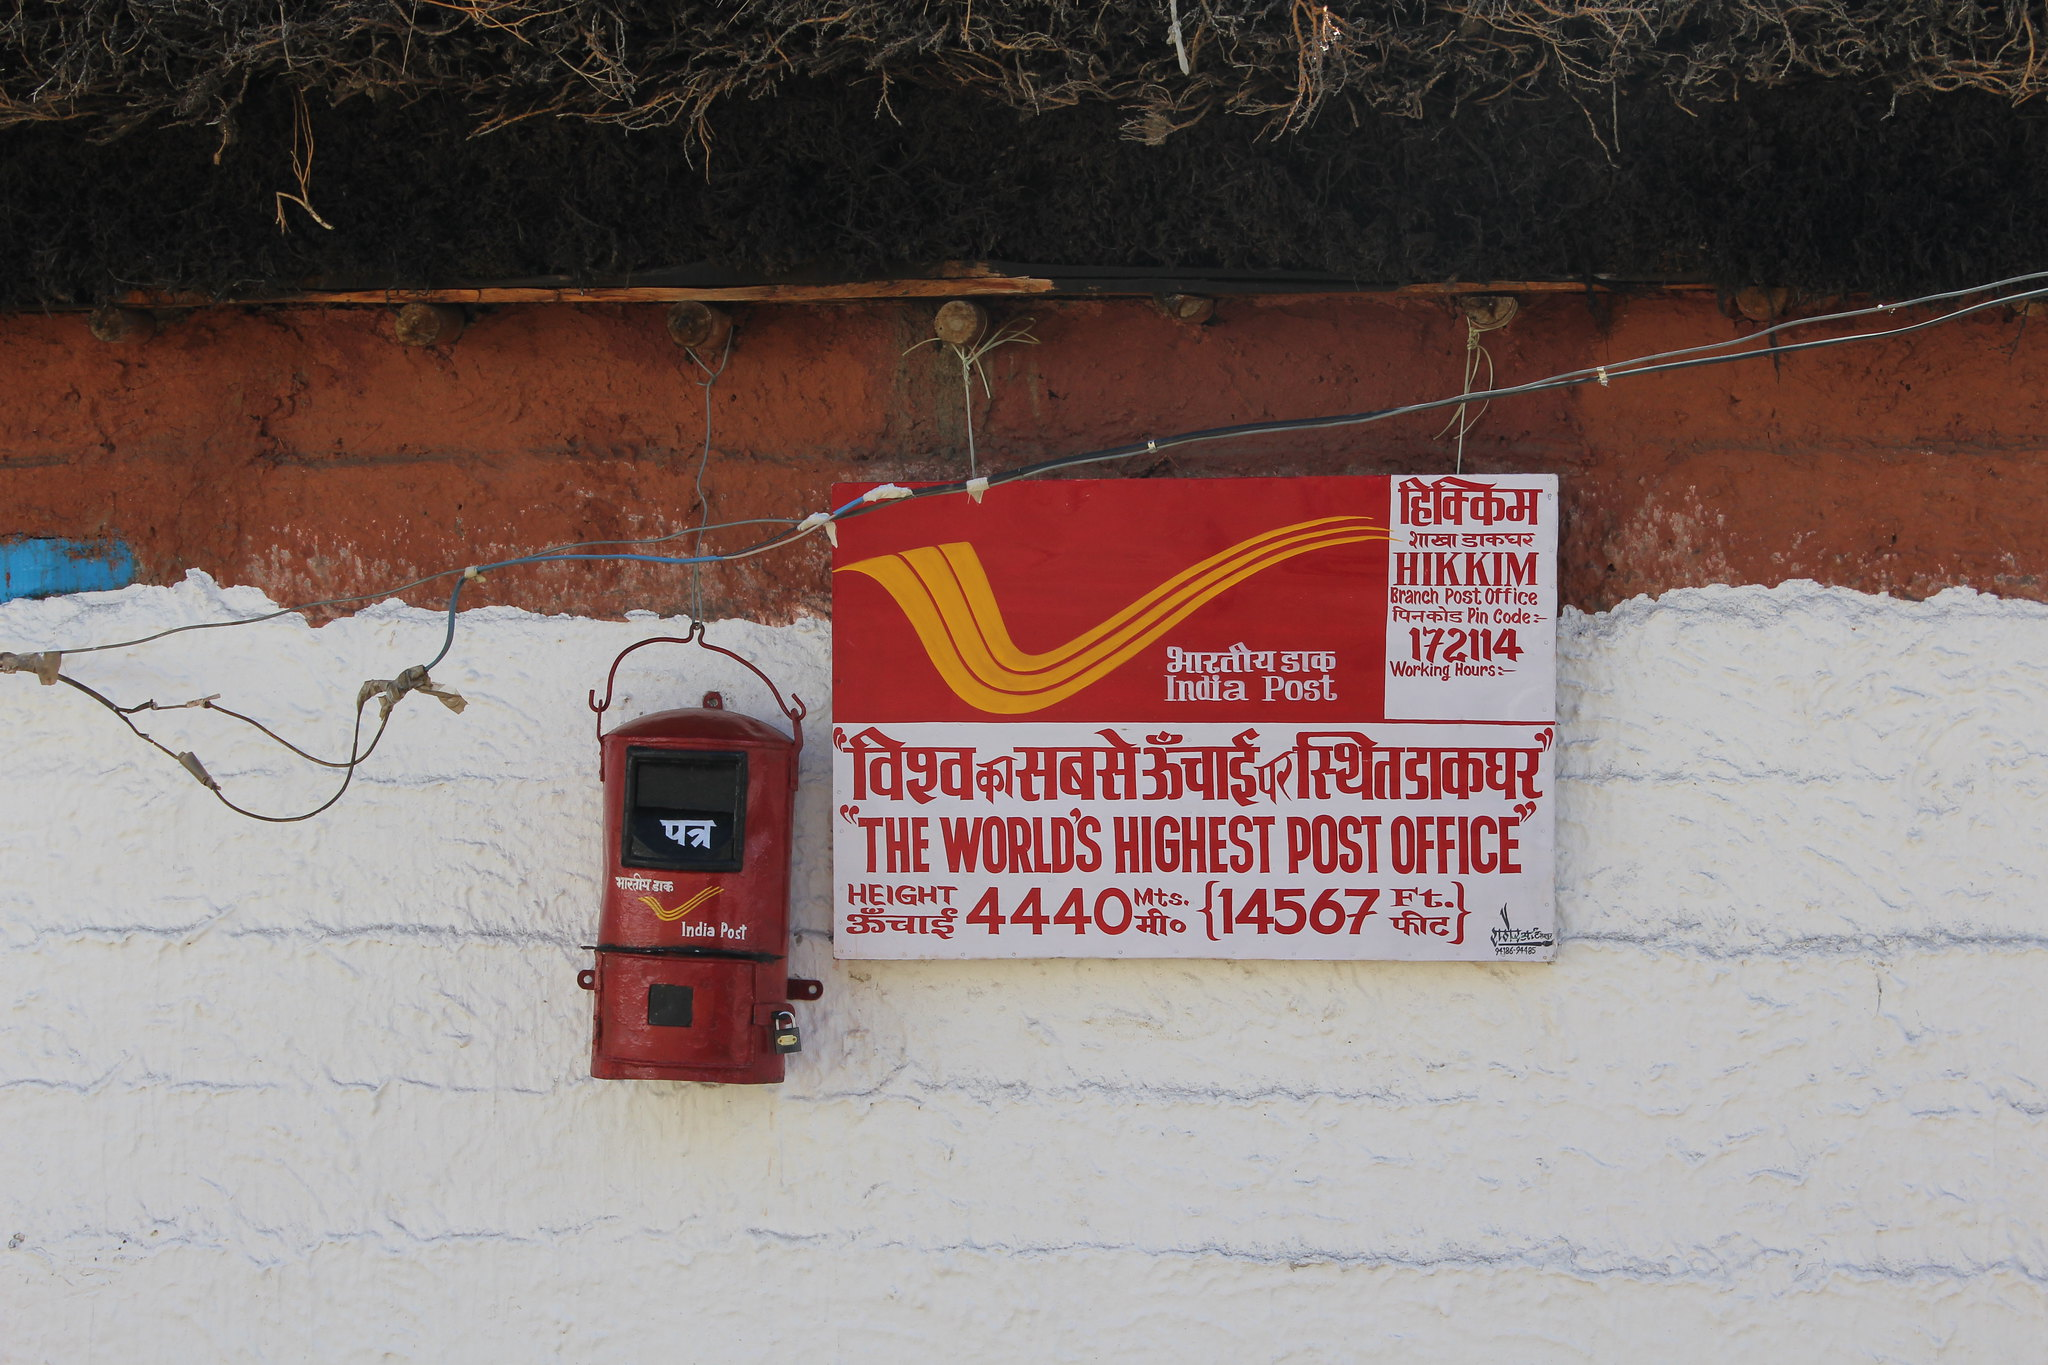 World's highest post office, Hikkim